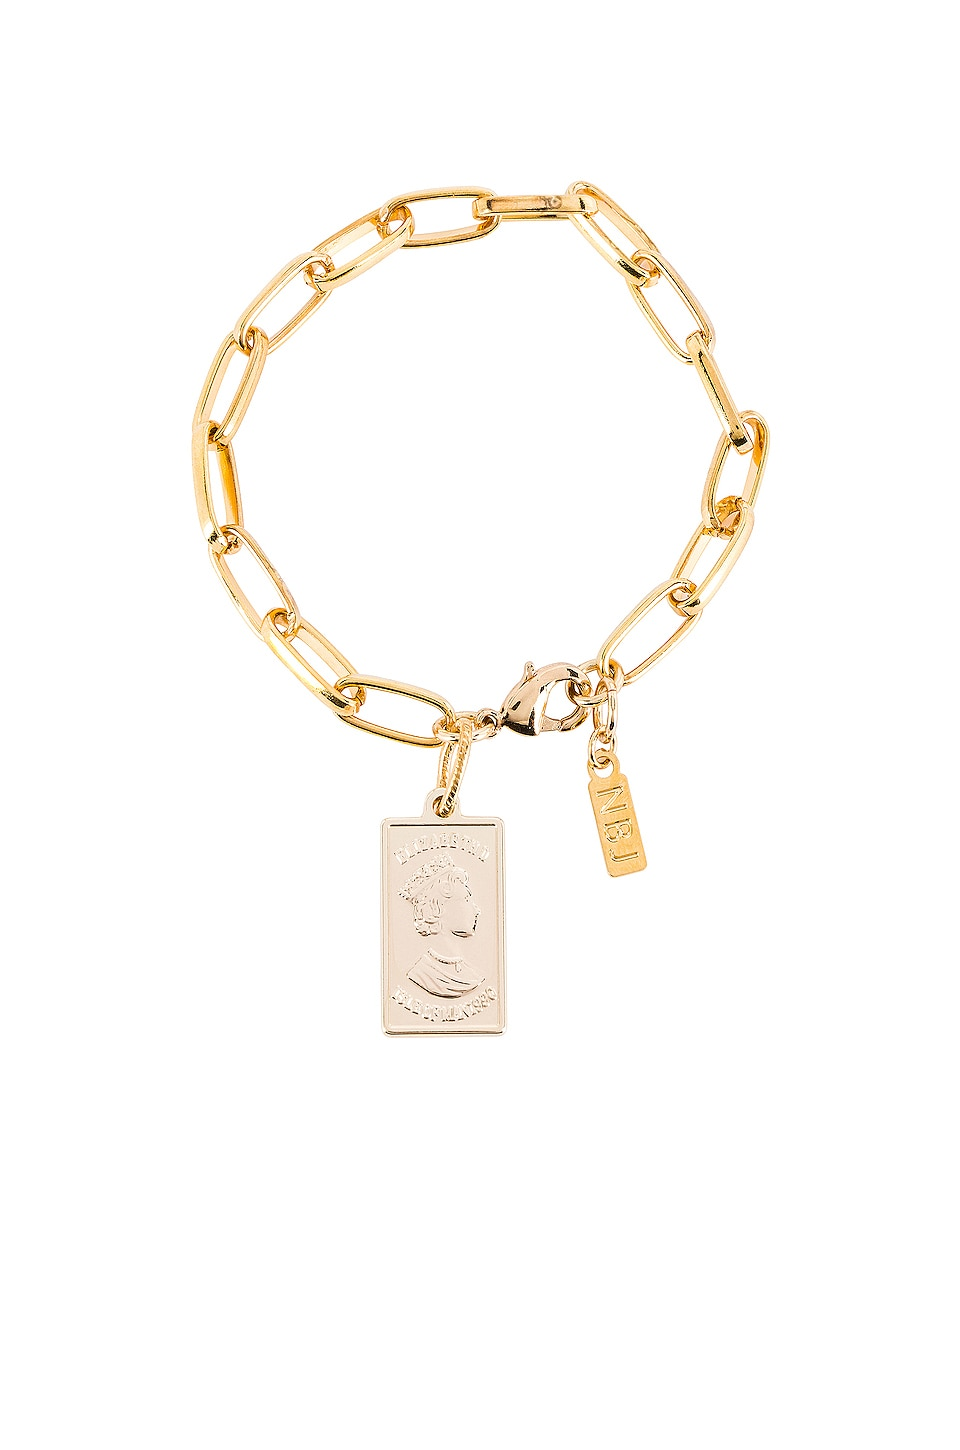 Natalie B Jewelry Gold Bar Link Bracelet in Gold